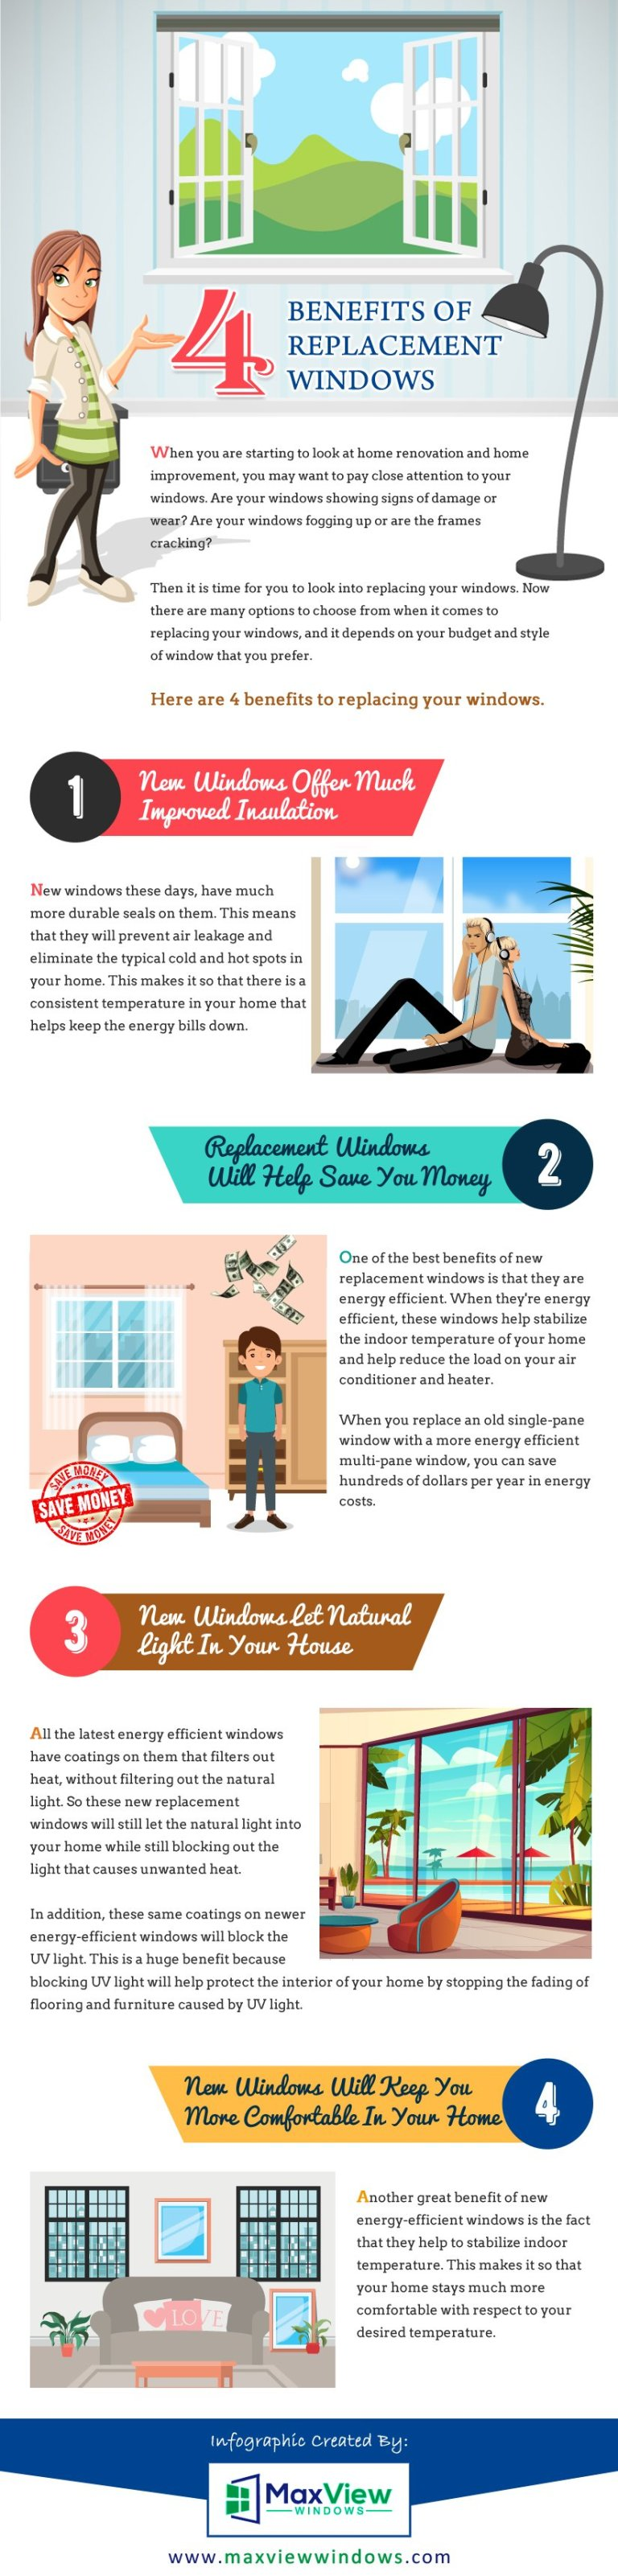 4 Benefits of Replacement Windows [INFOGRAPHIC]